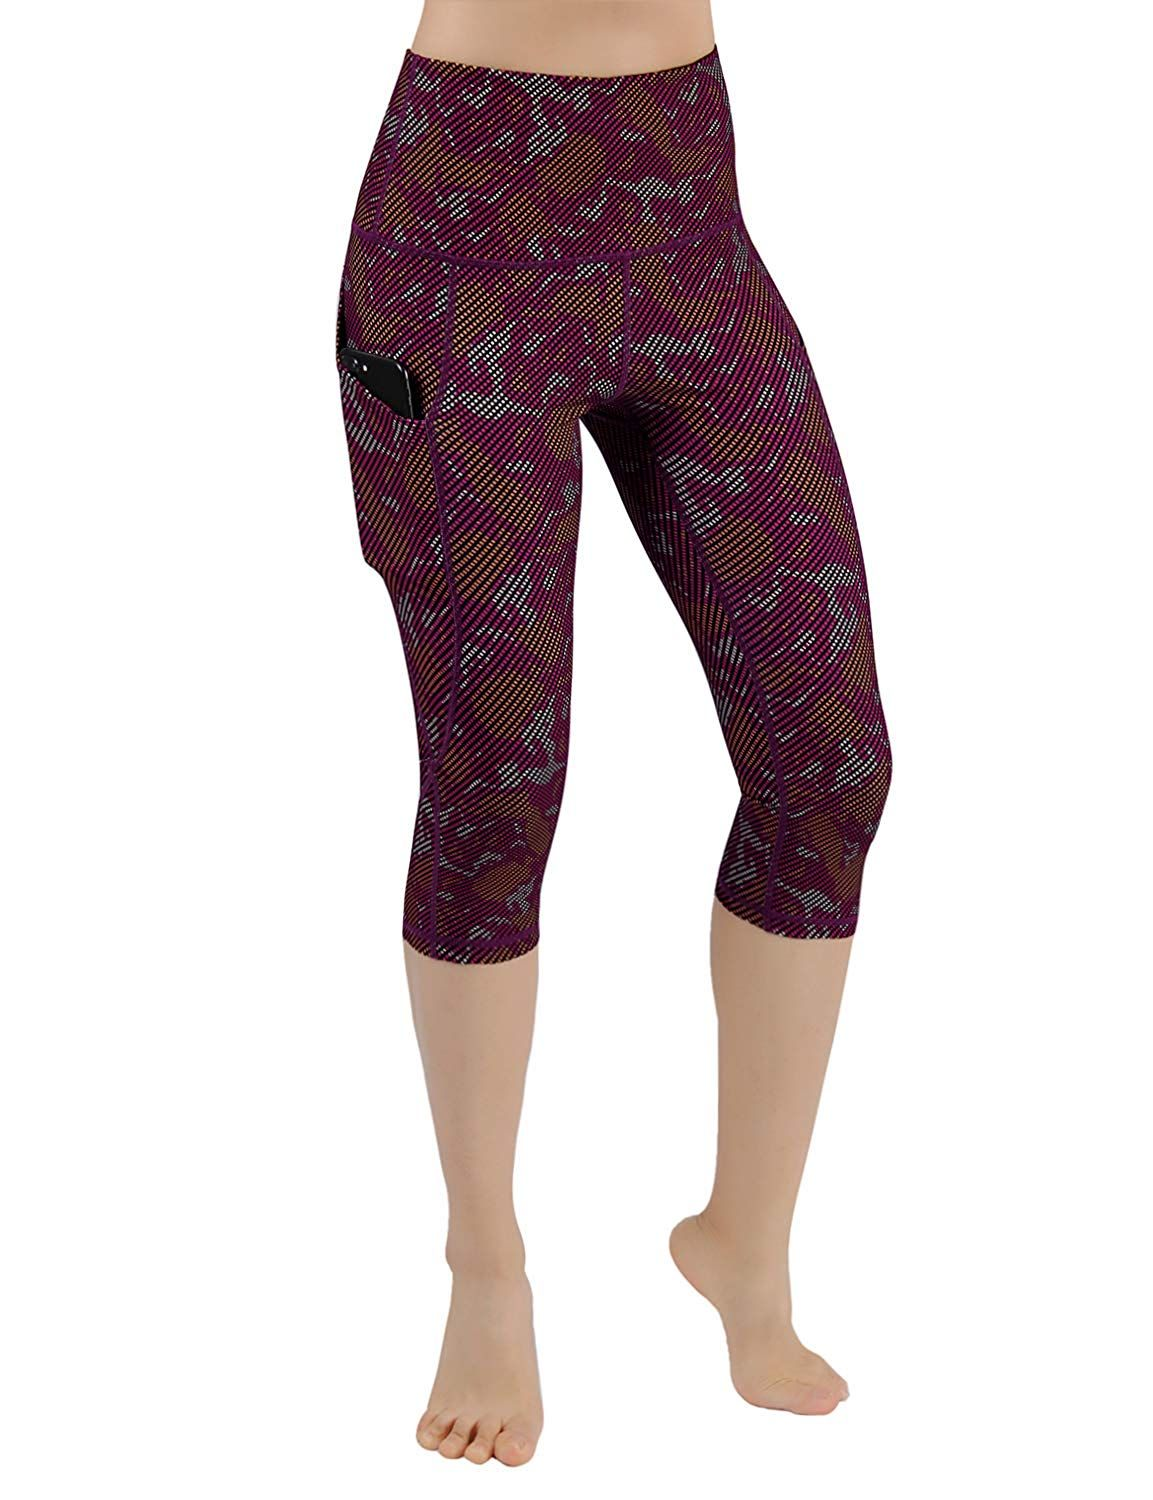 19cfb509cfaee ODODOS High Waist Out Pocket Printed Yoga Capris Pants Tummy Control Workout  Running 4 Way Stretch Yoga Leggings,Camouflage,X-Small